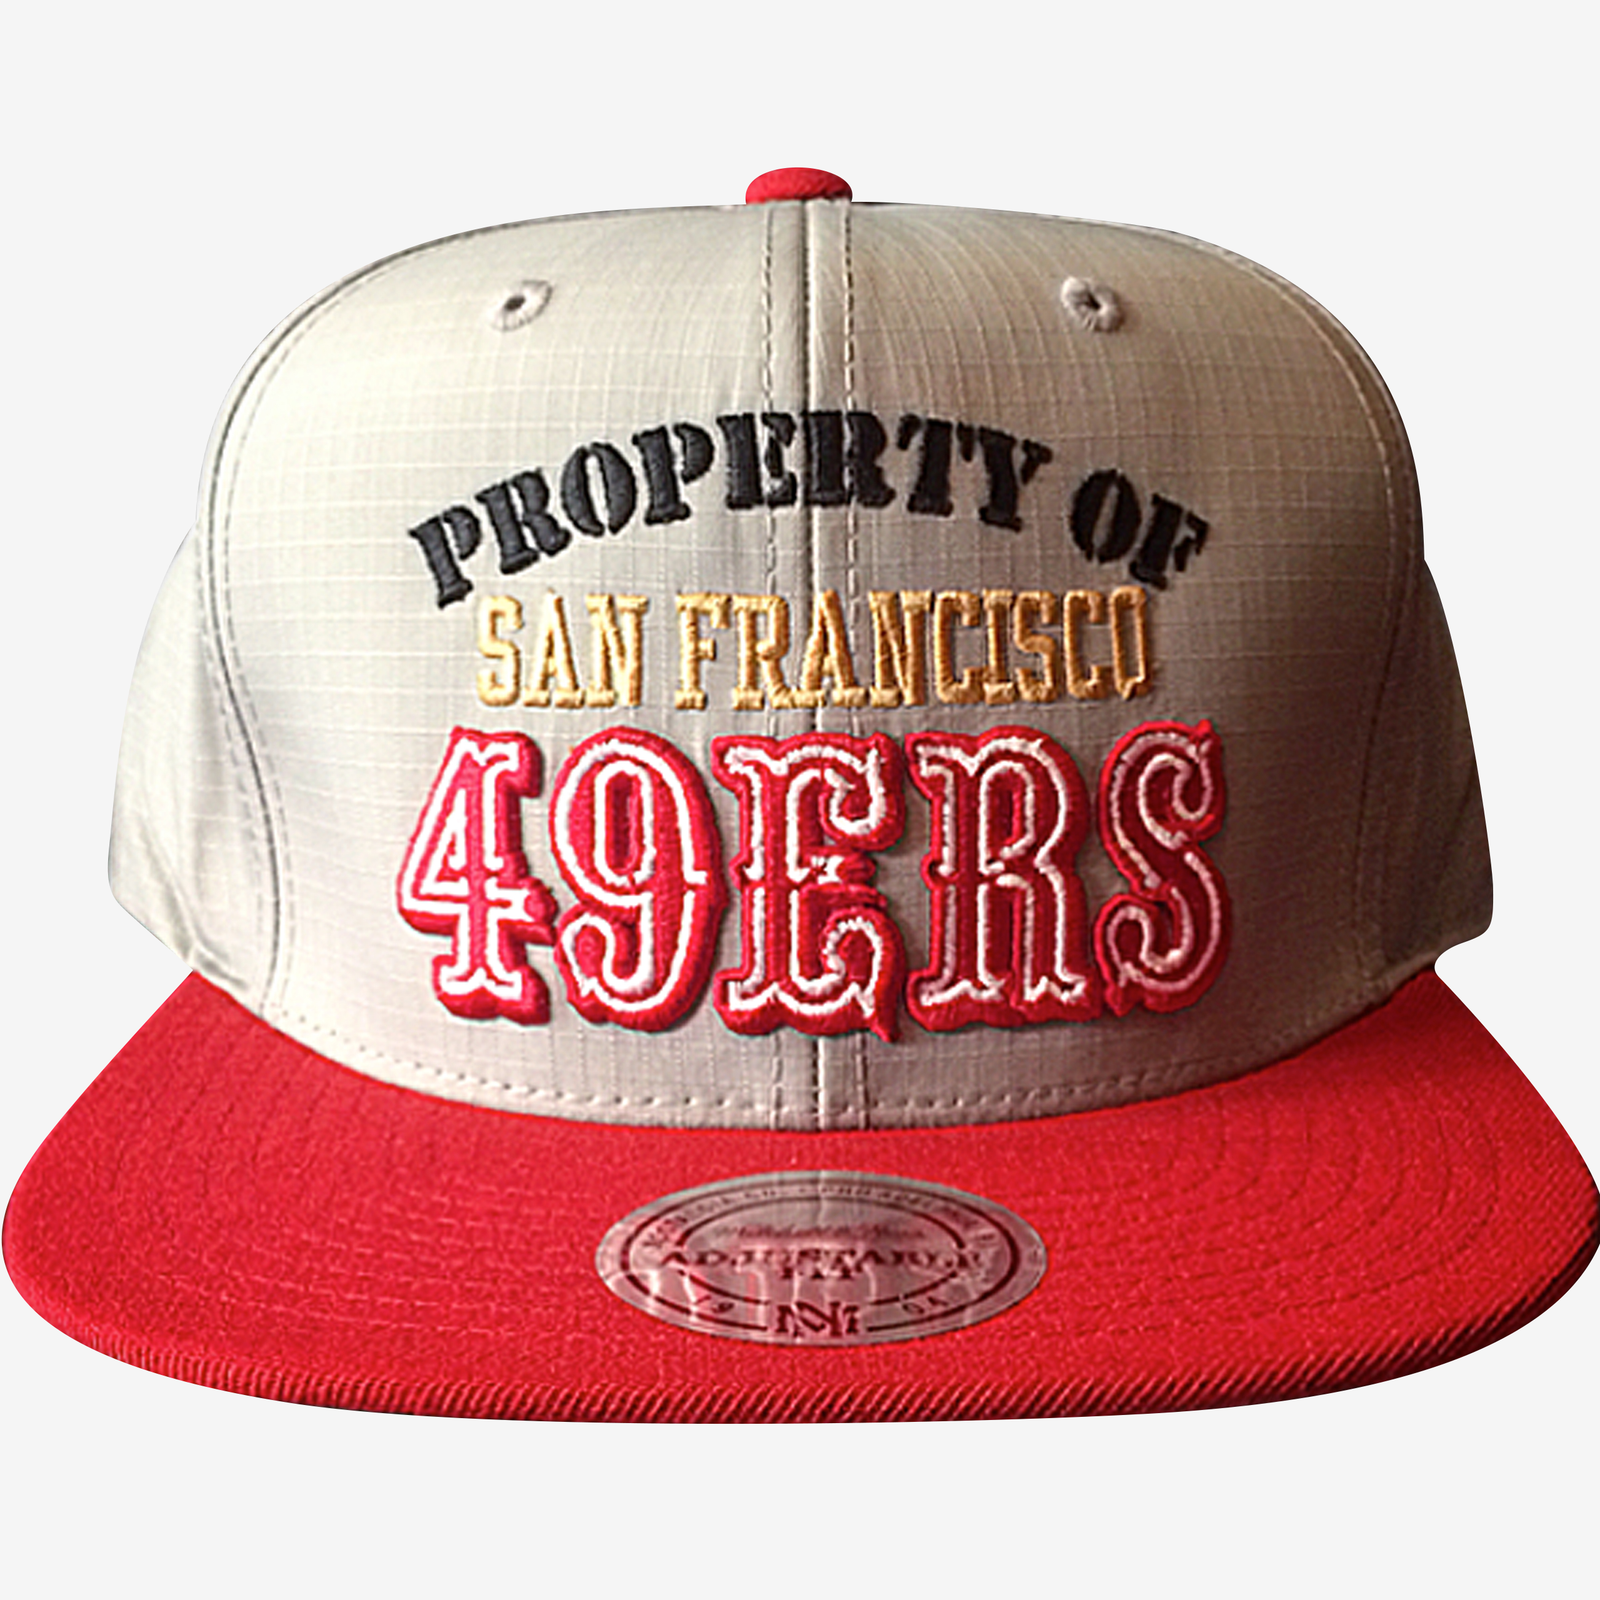 San Francisco 49ers Mitchell & Ness Zipperback